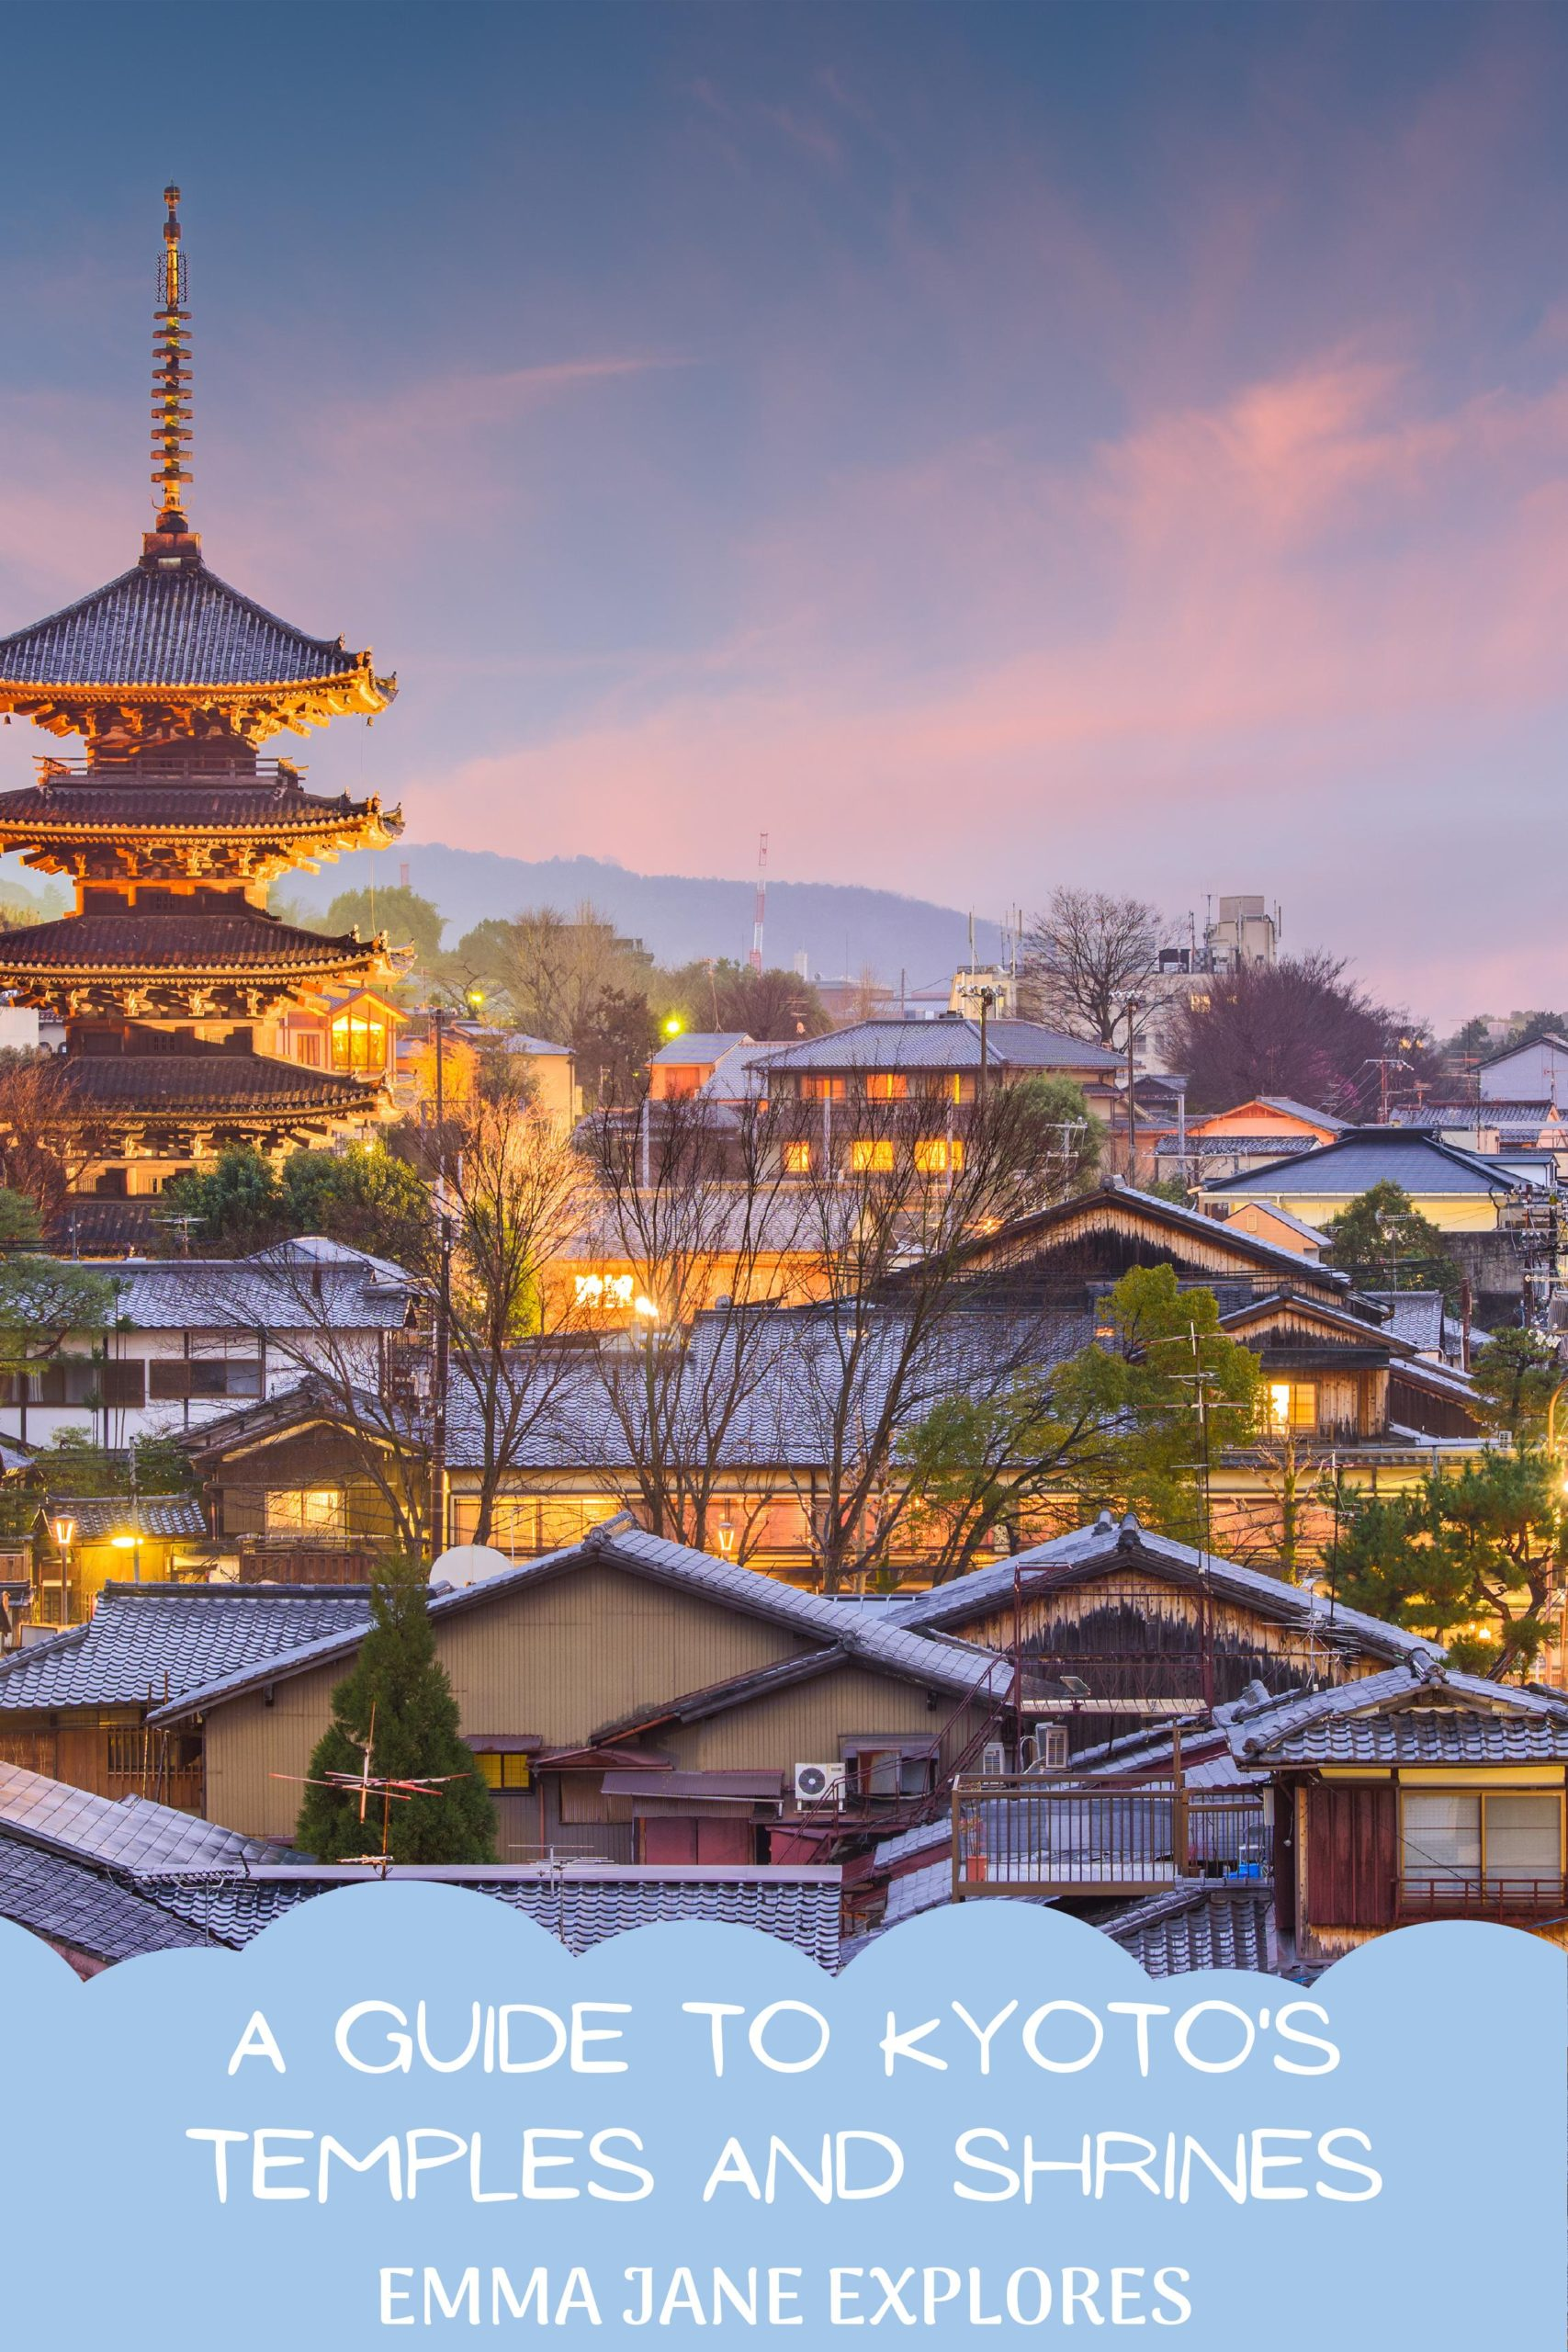 The Best Temples and Shrines To Visit in Kyoto - Emma Jane Explores